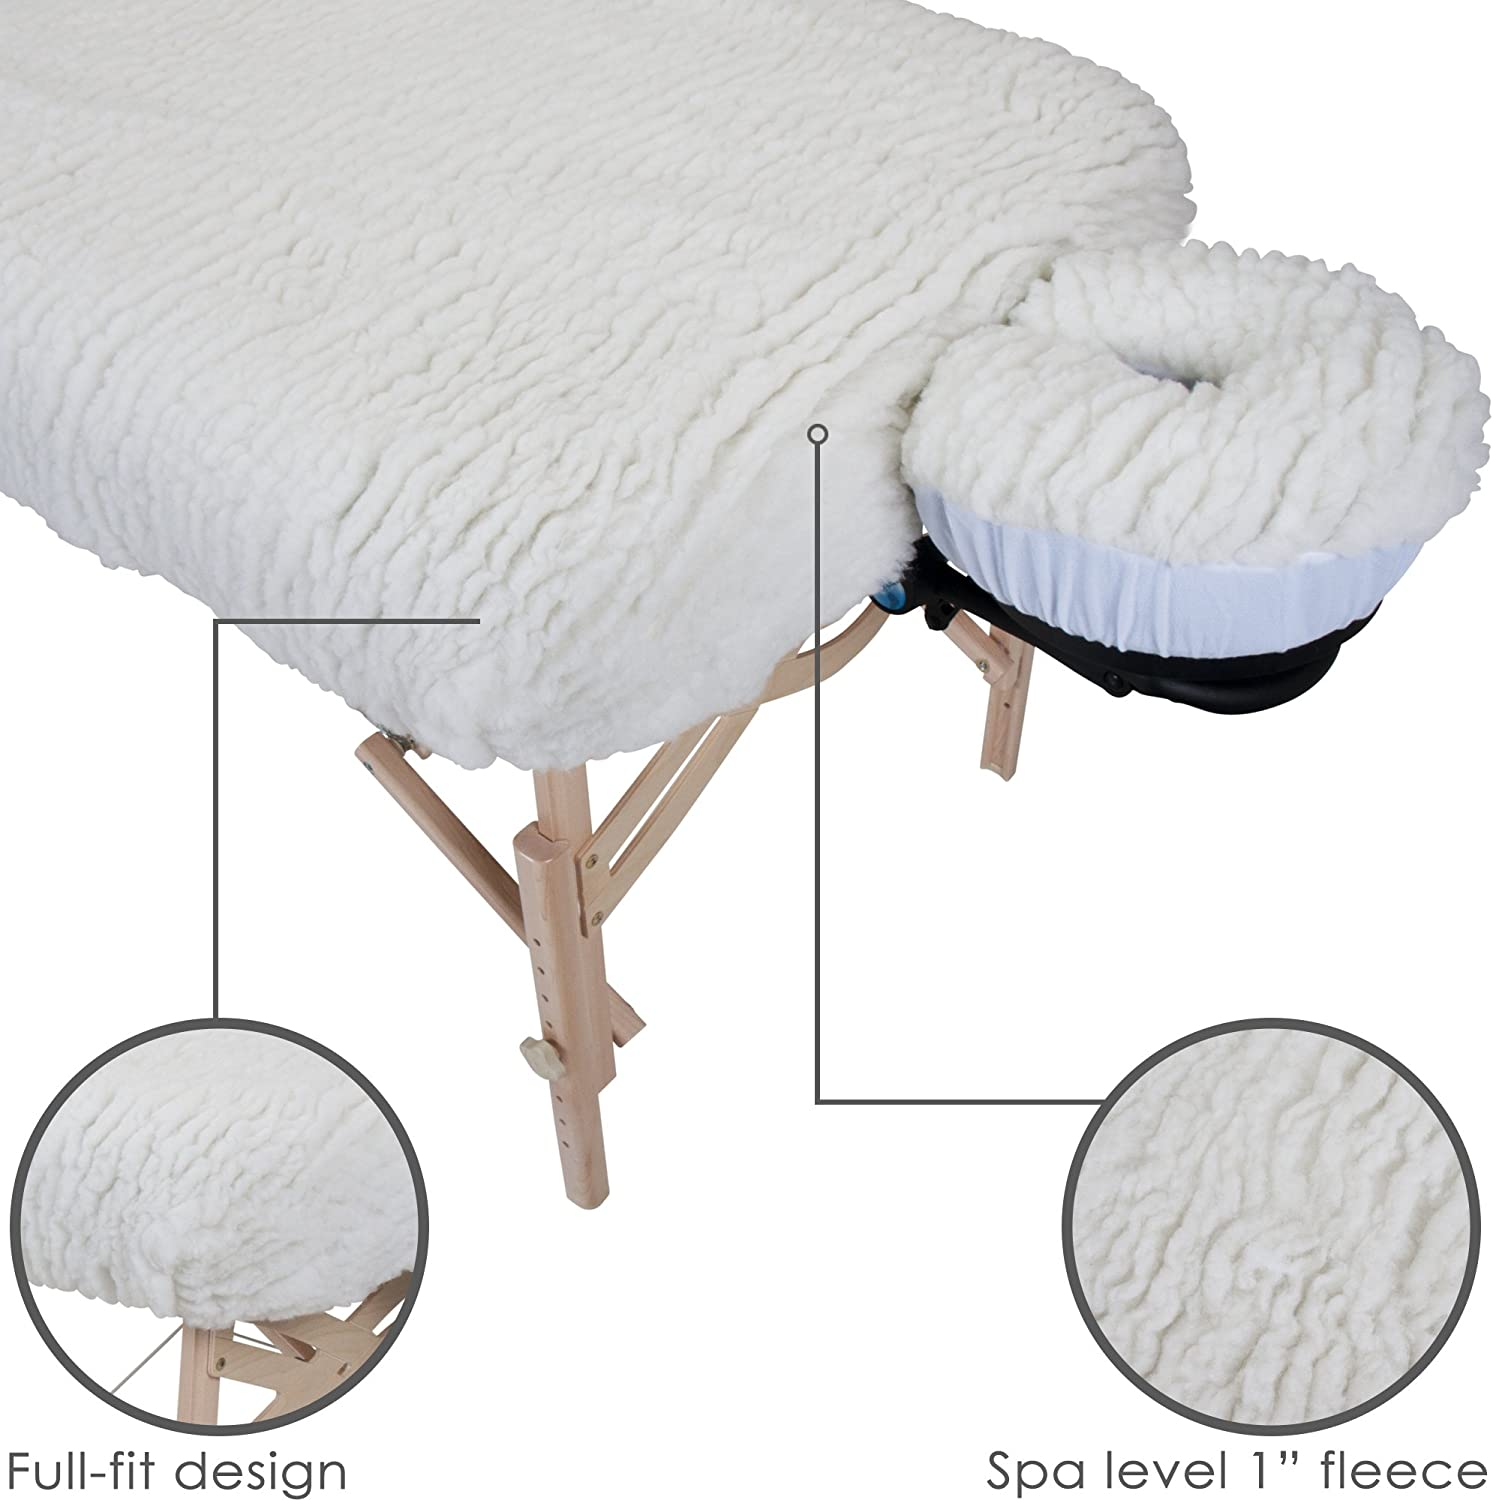 EARTHLITE Massage Table Fleece Pads – Different Styles & Sets - Cover Your Massage Table & Face Cradles in Cozy, Warm Fleece, Deluxe Set: Sports & Outdoors